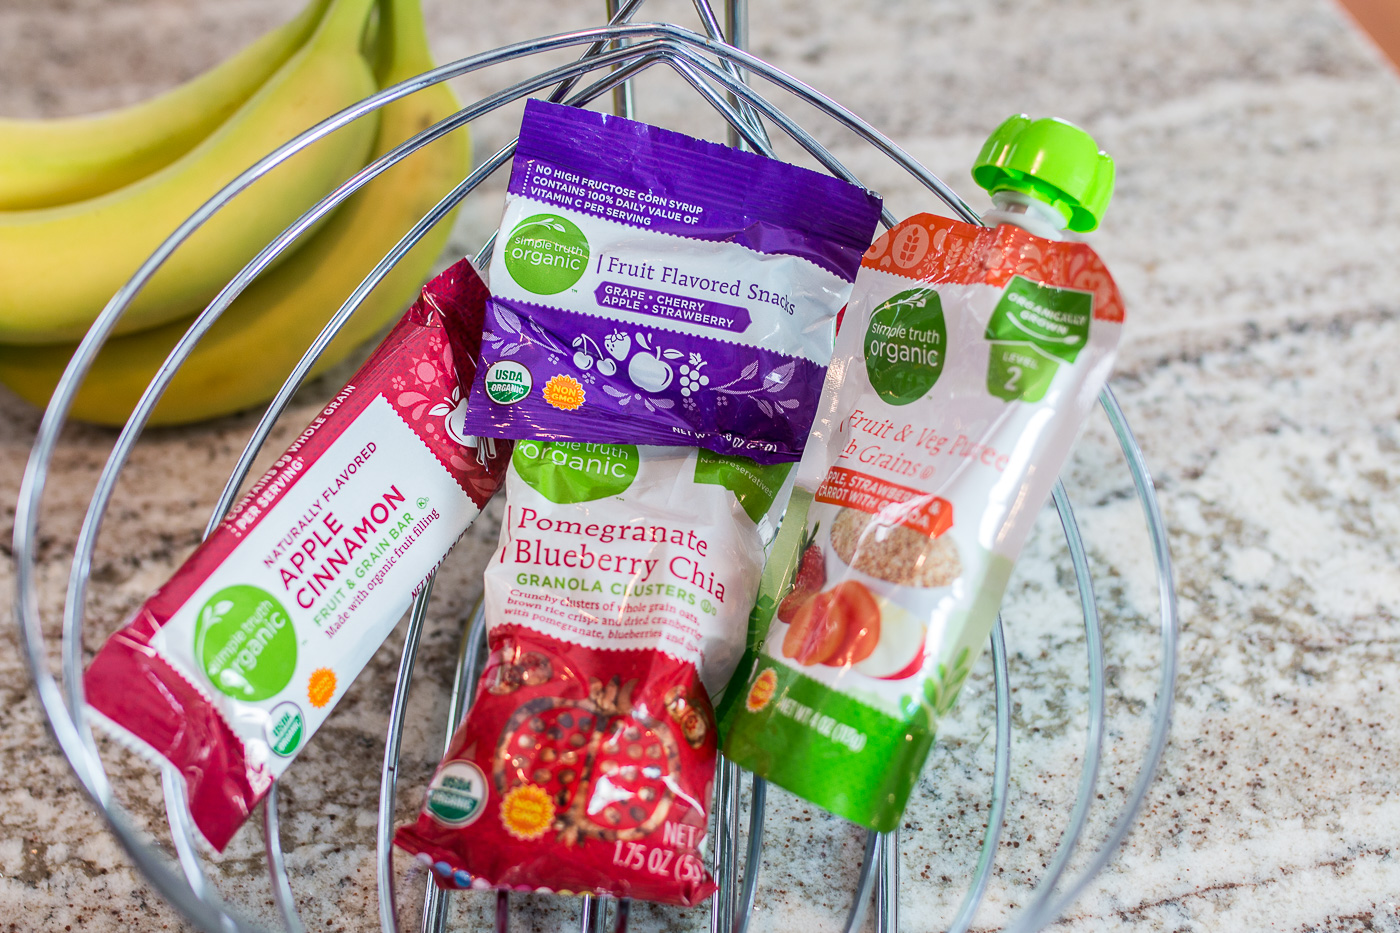 Simple Truth Organic Snacks